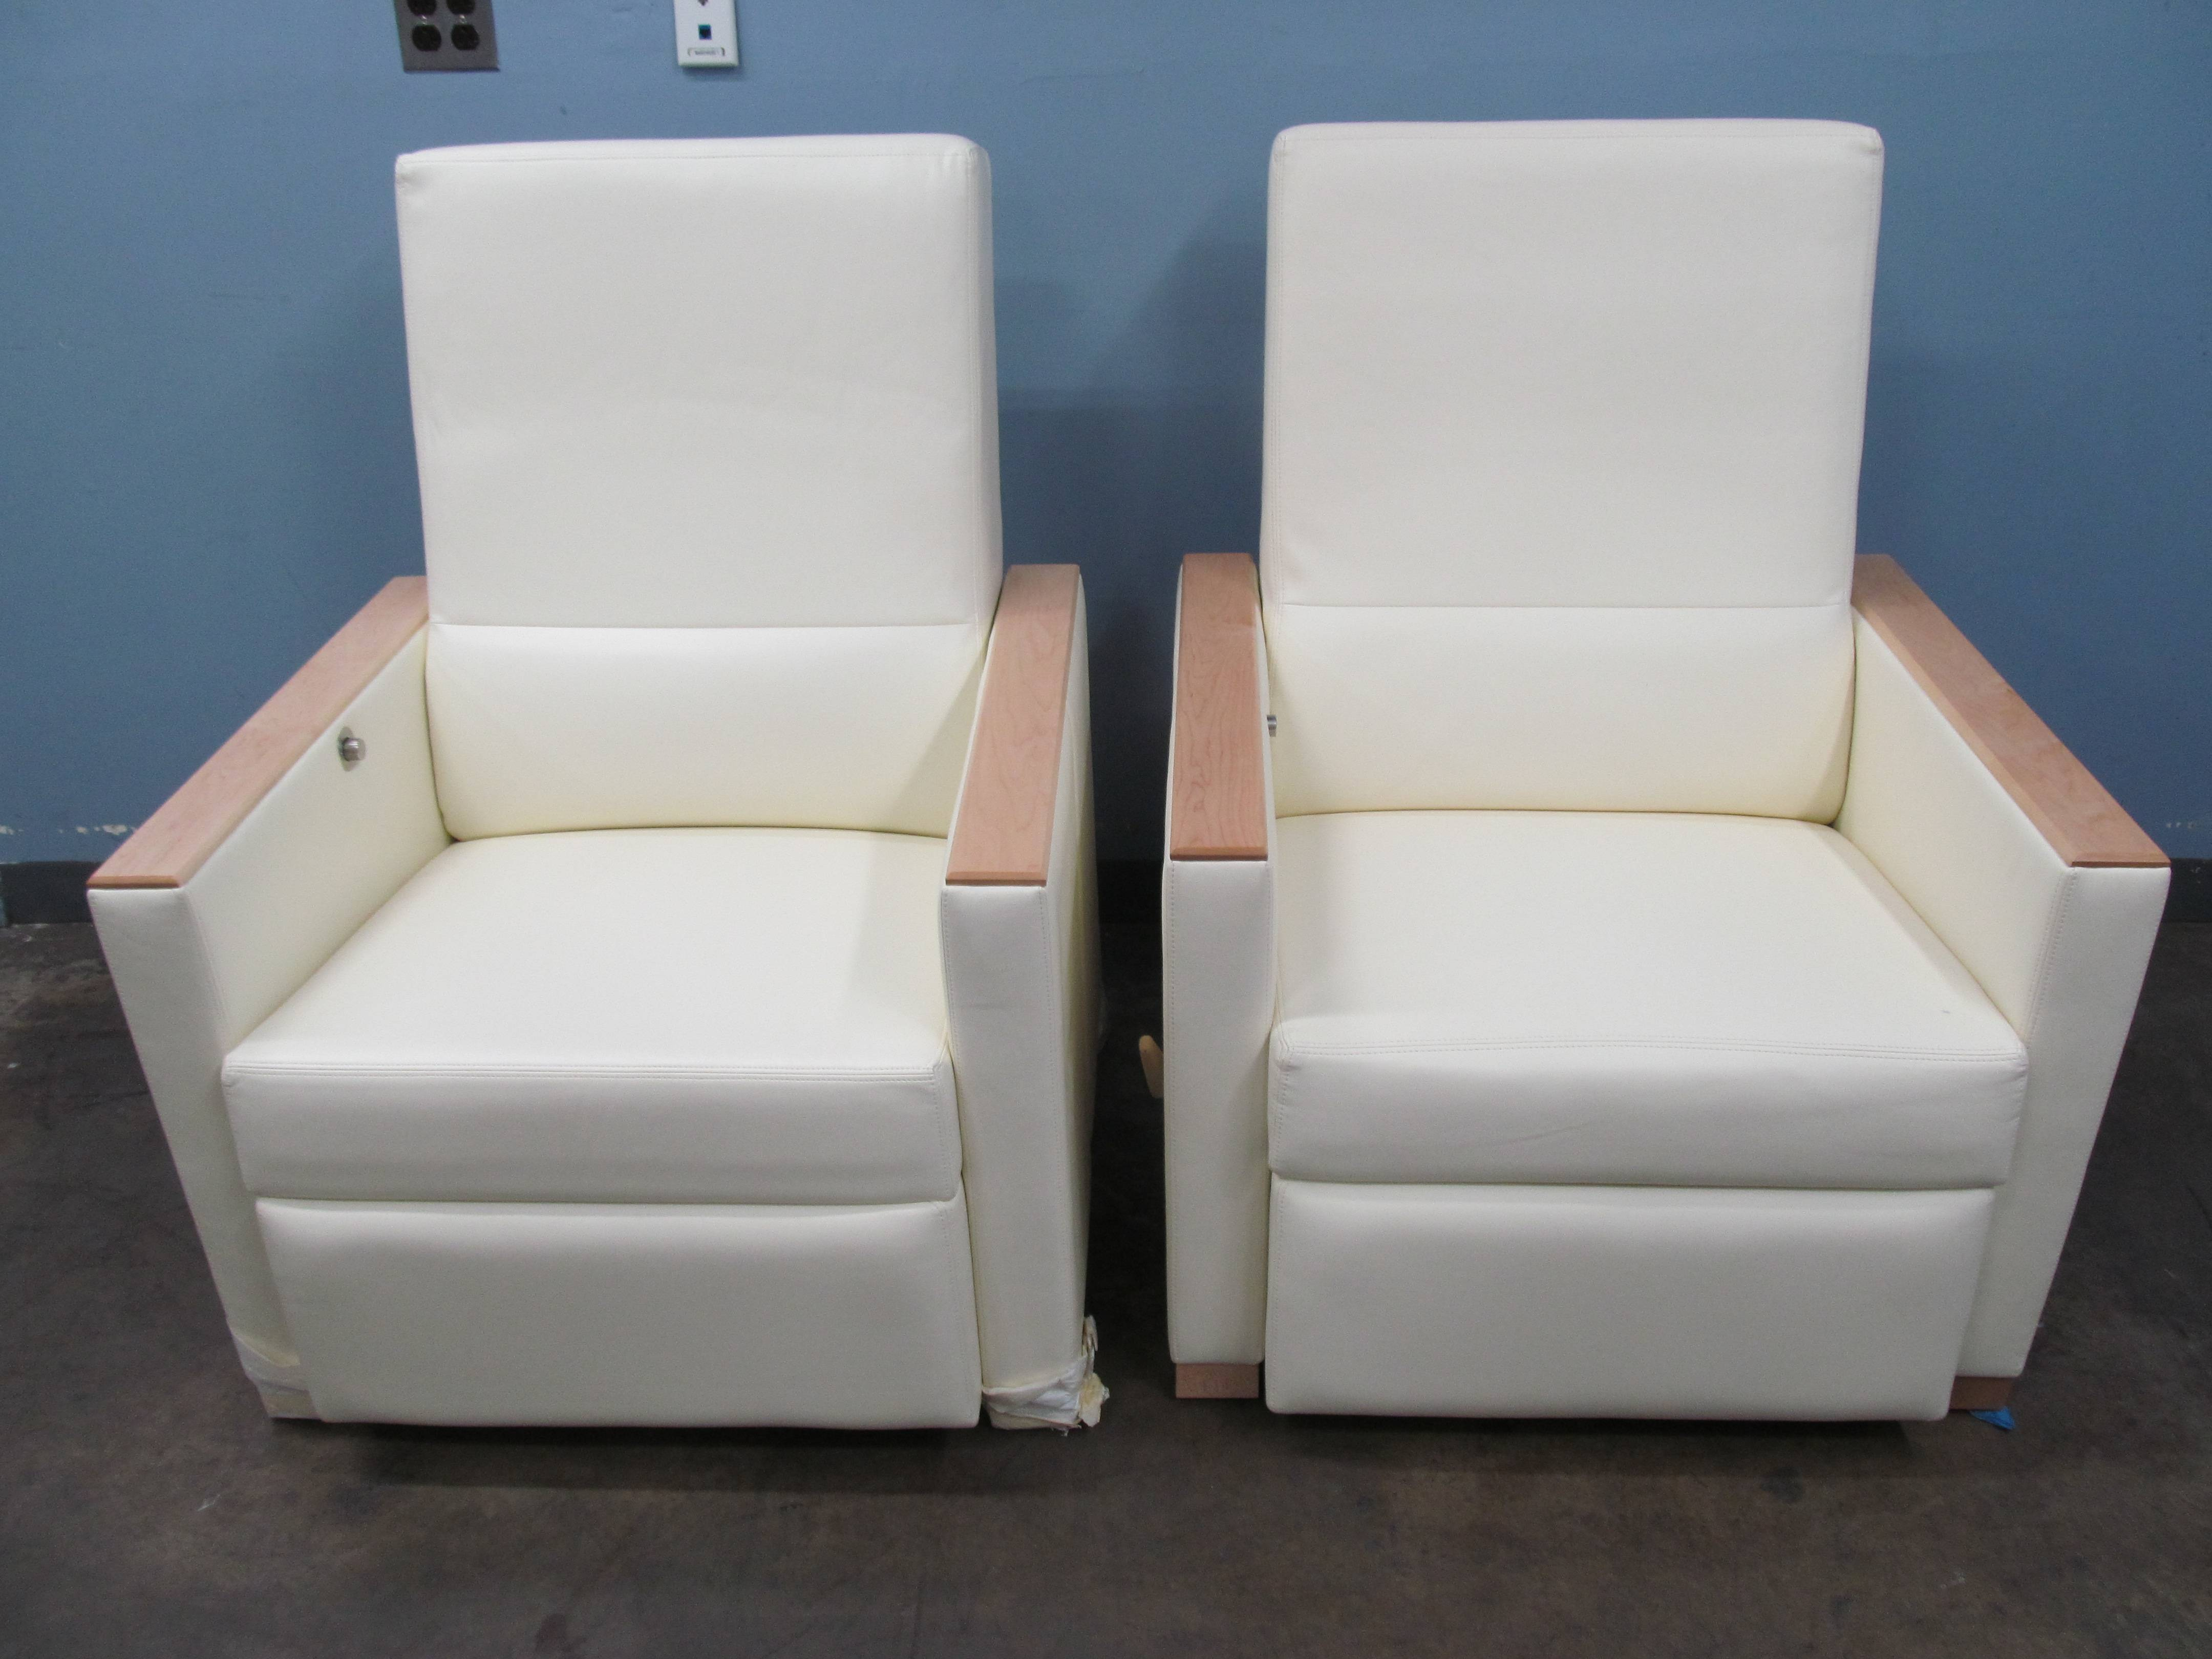 Lot of 2 Nemschoff 814 62 Leonard II Blood Drawing Recliners With Pushbutton Back Release